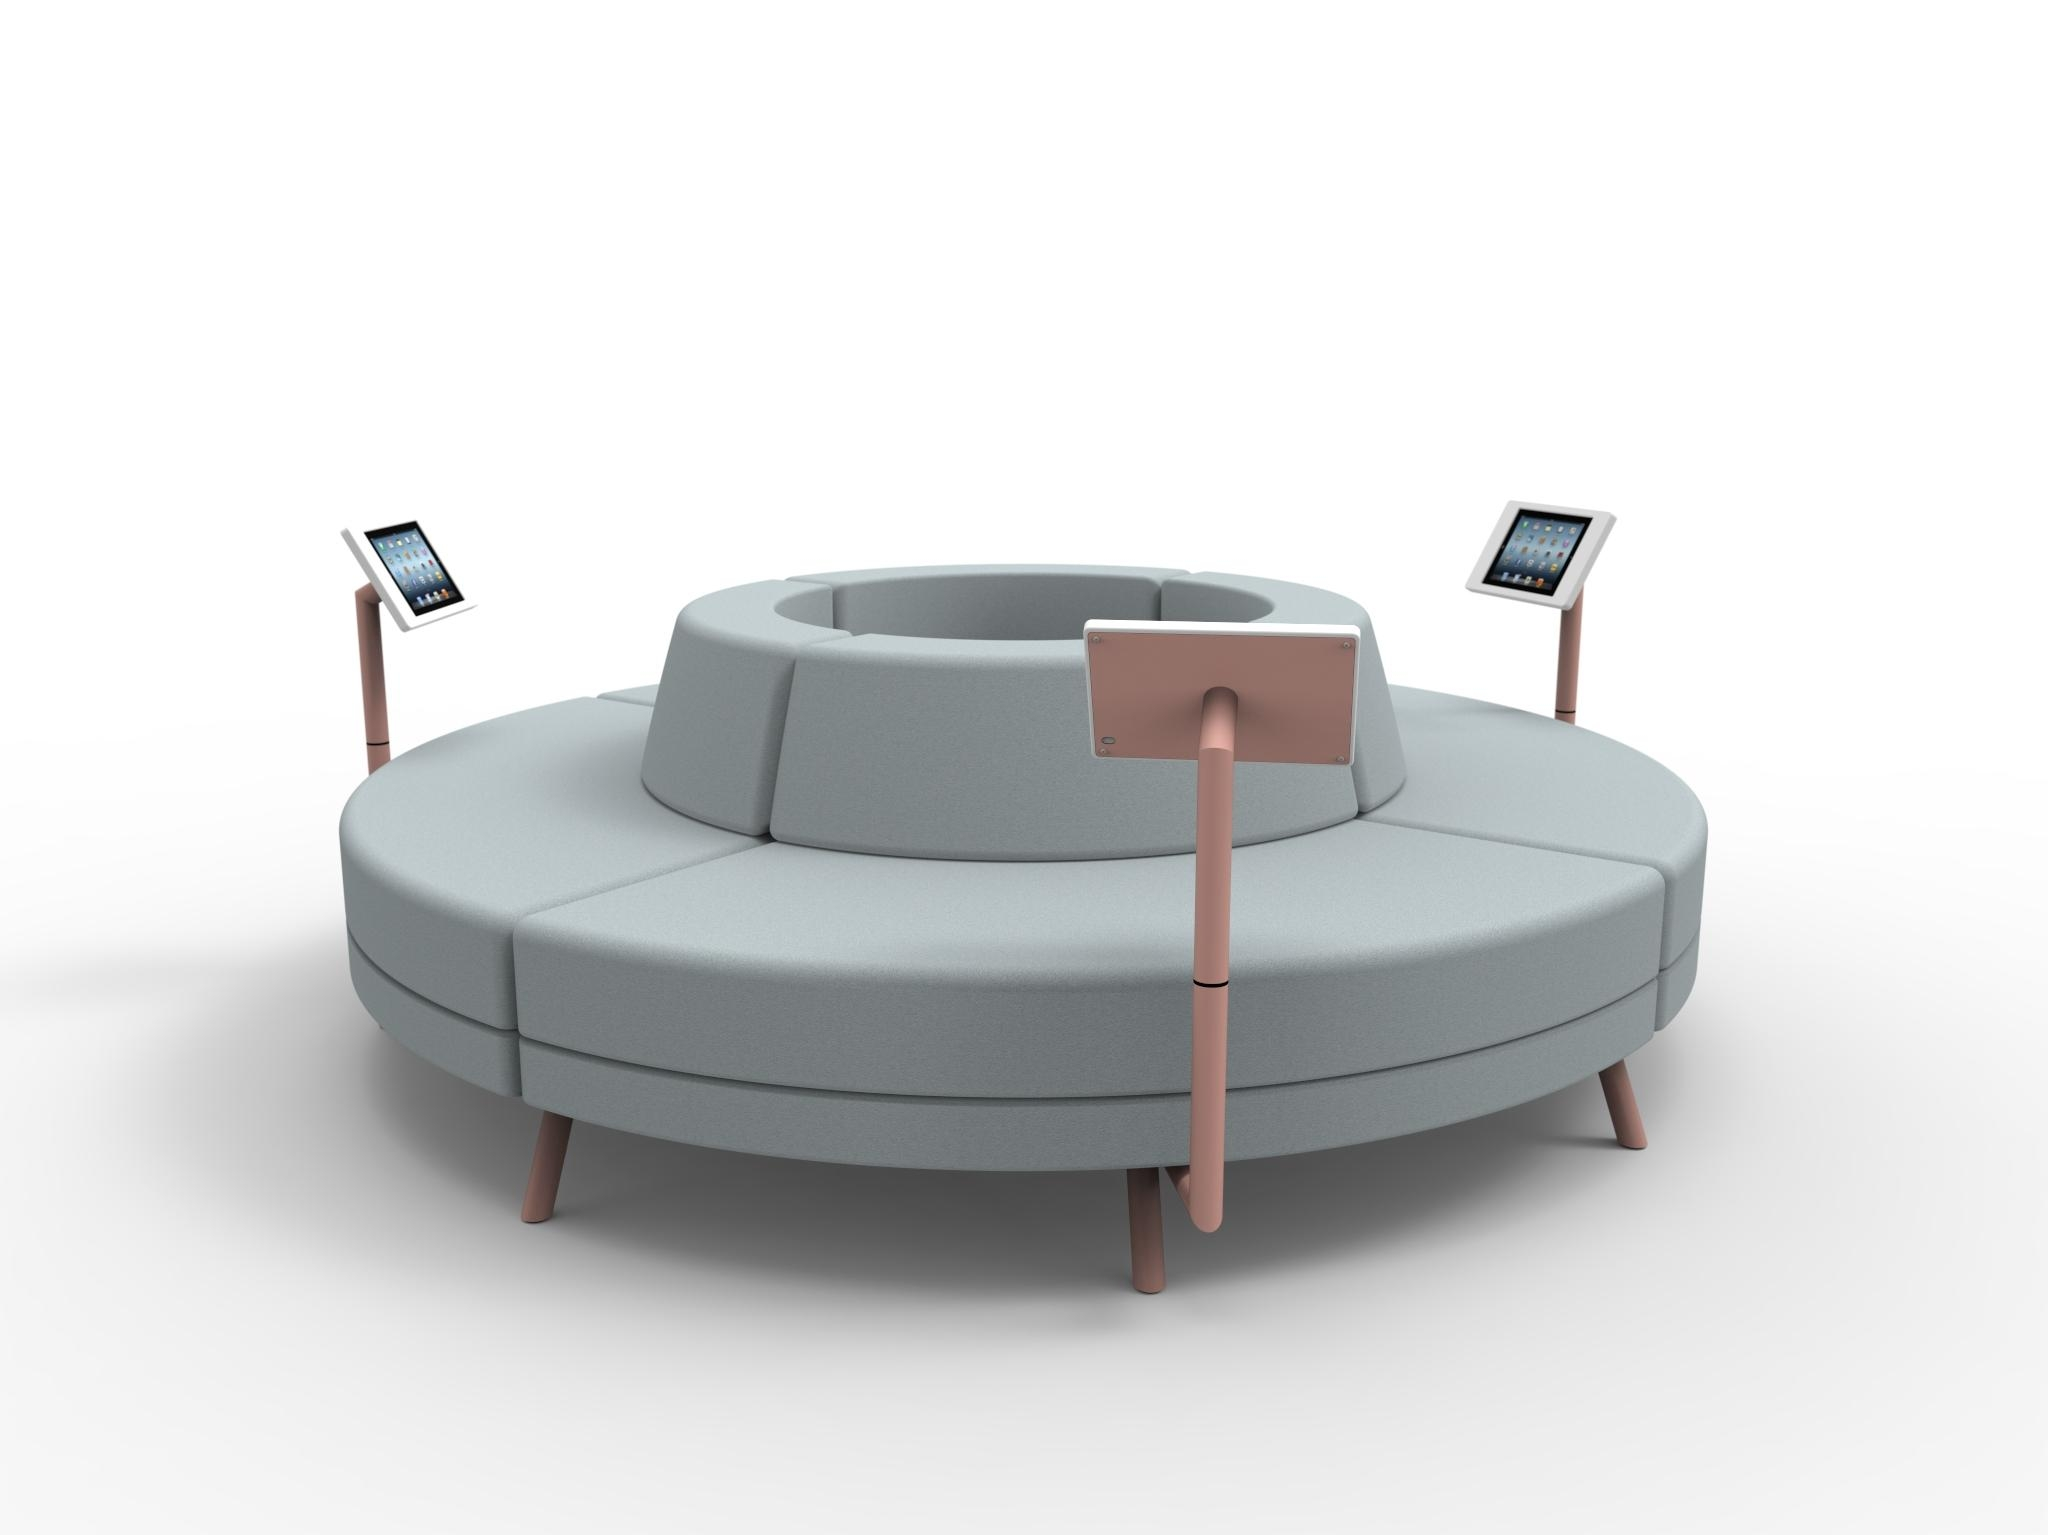 Furniture: Create Your Comfortable Living Room Decor With Round With Regard To Leather Modular Sectional Sofas (Image 6 of 20)